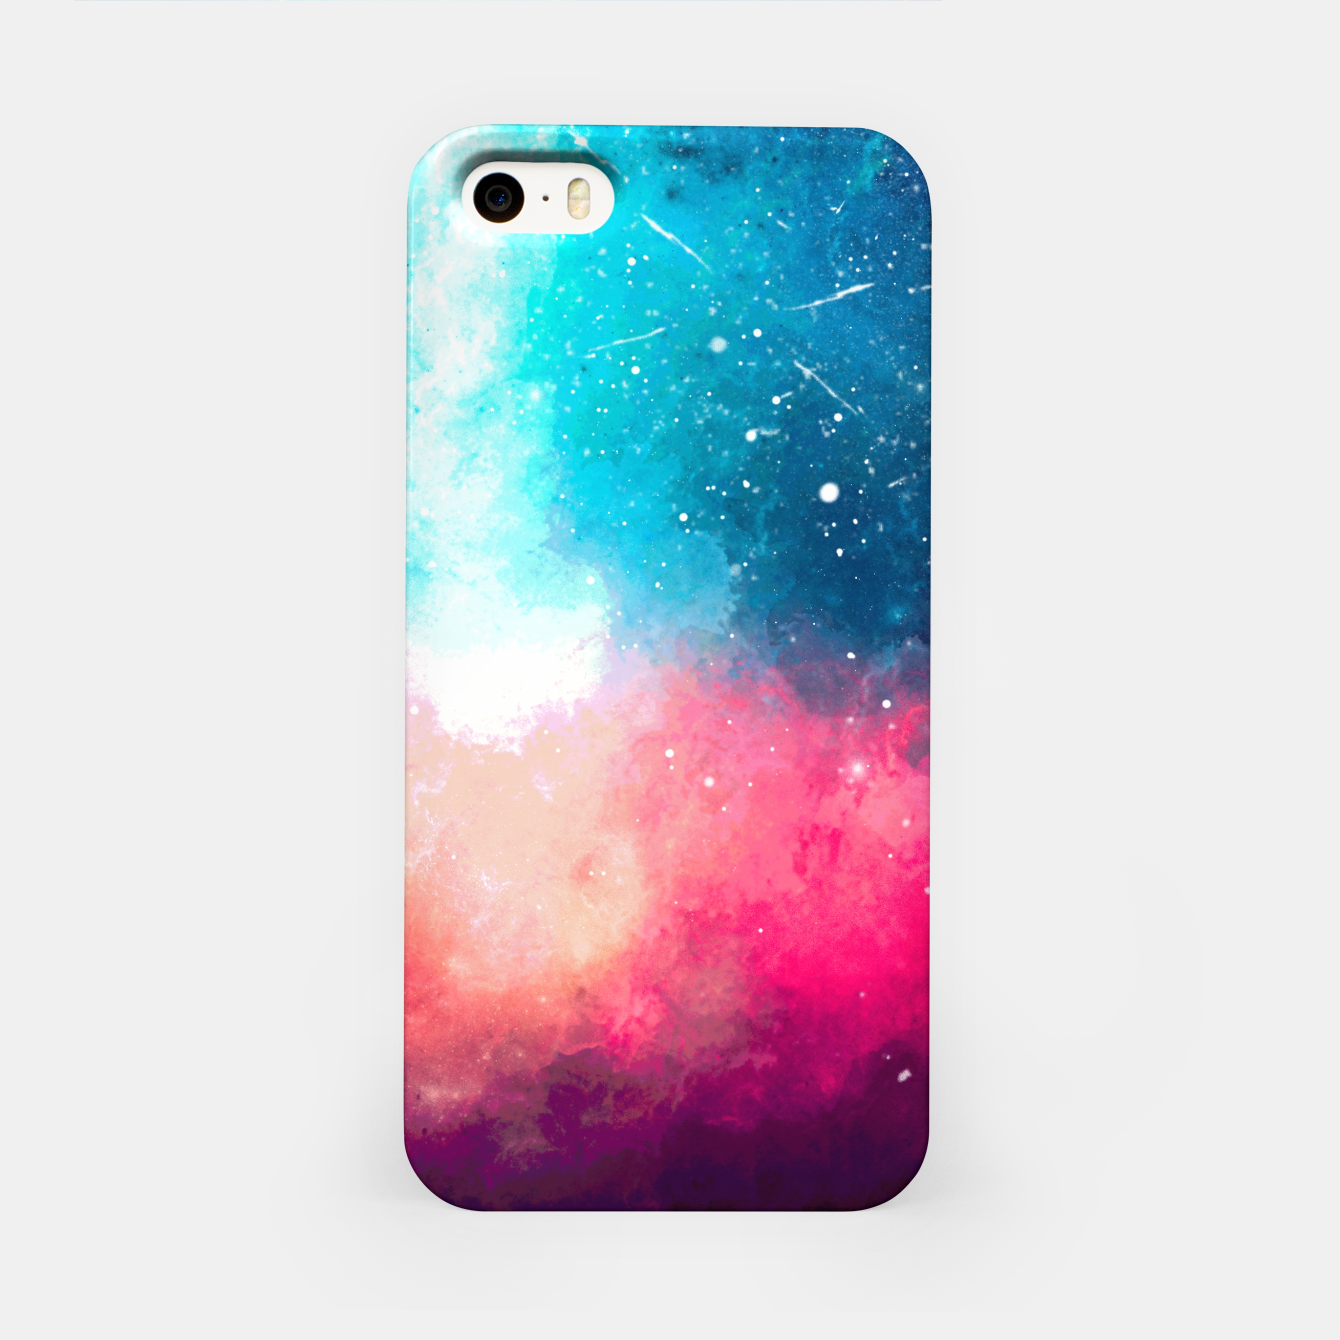 Foto Galaxy iPhone Case - Live Heroes